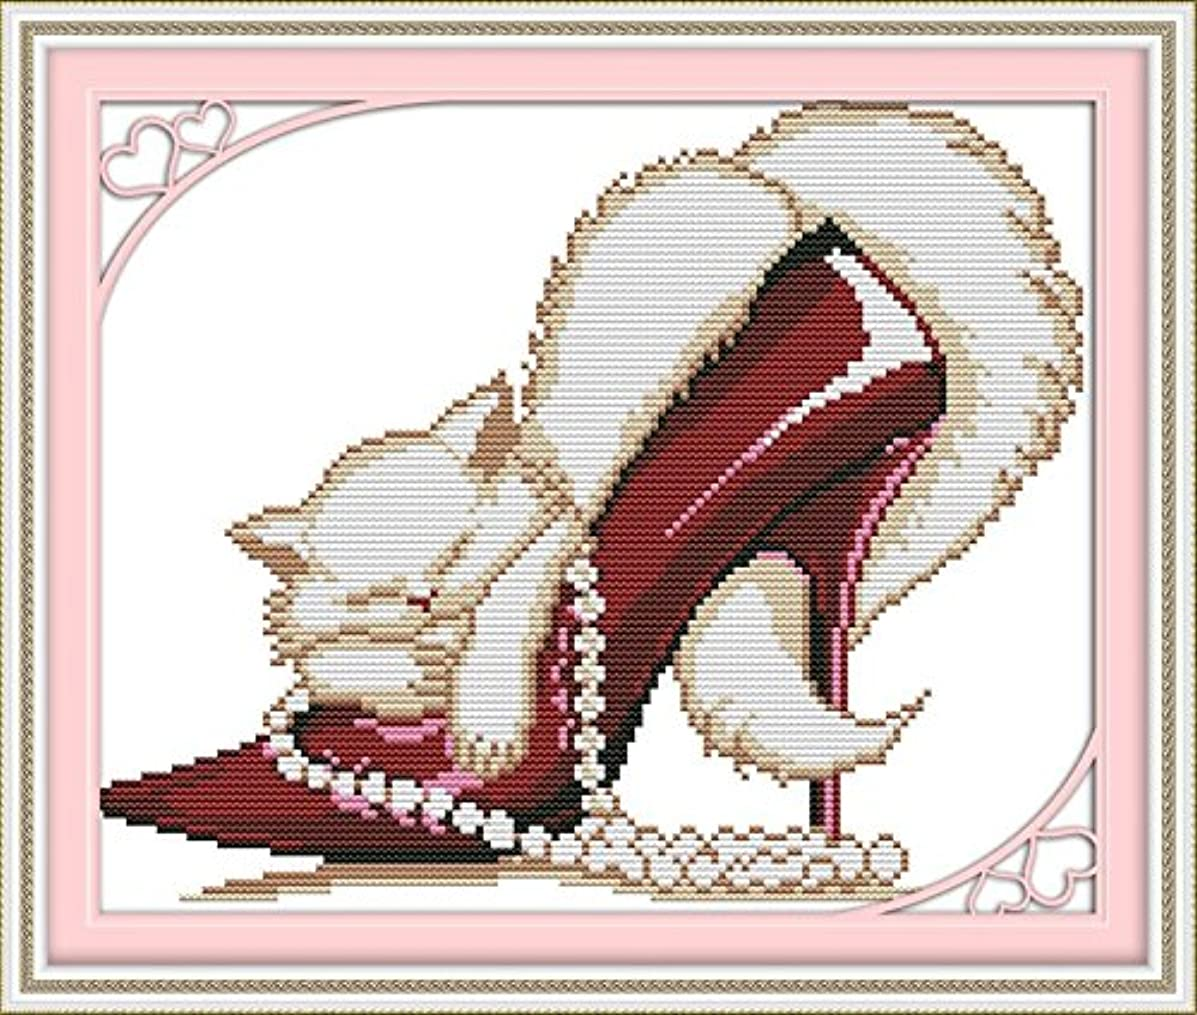 Joy Sunday Cross Stitch Kit 14CT Stamped Embroidery Kits Precise Printed Needlework- Fashion high heels and a cat (3) 32×27CM